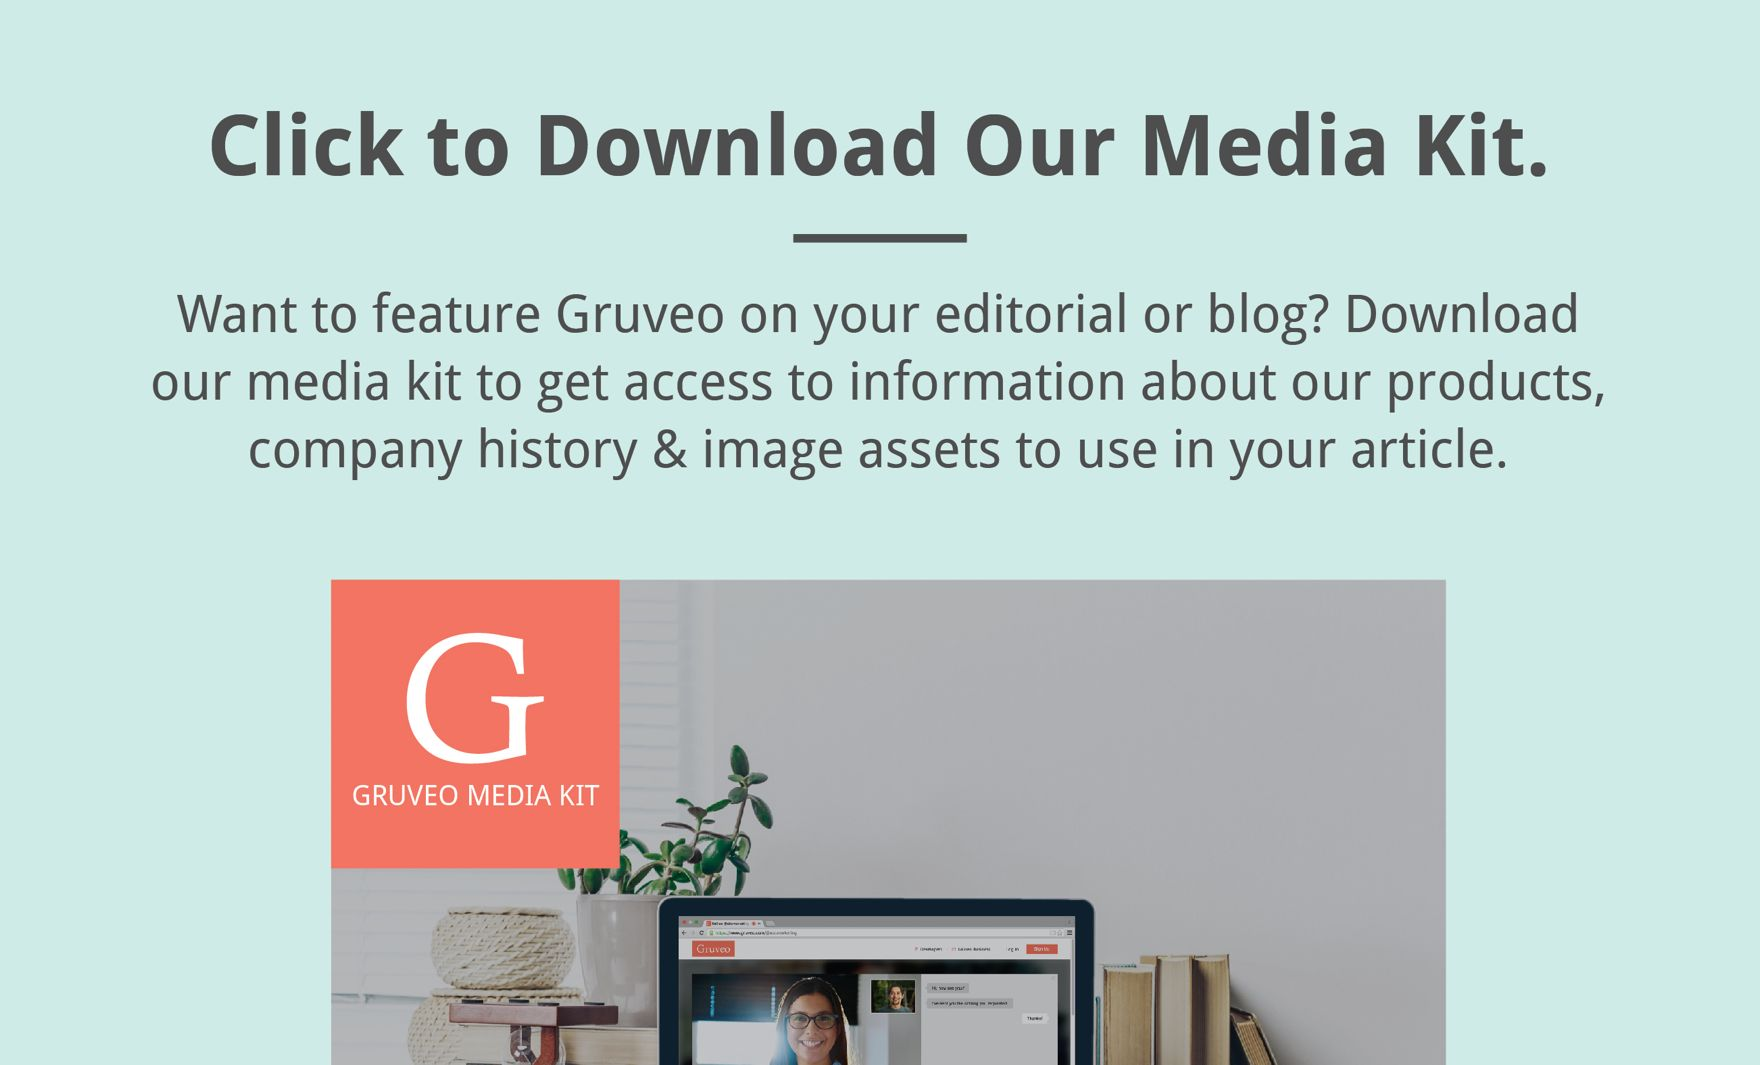 Download the Gruveo Media Kit